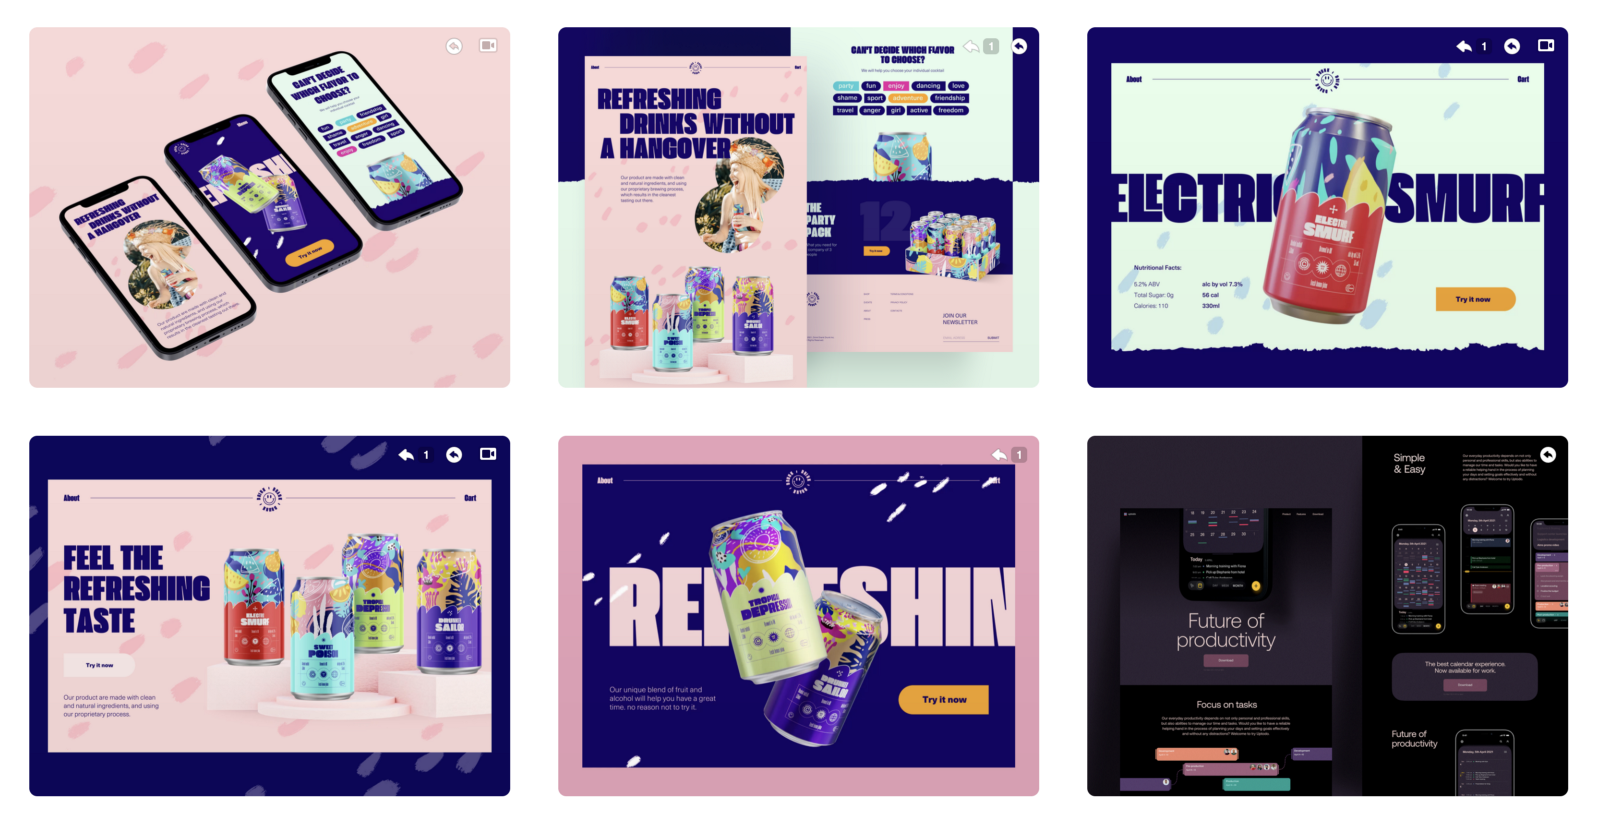 Example of a UI design portfolio on Dribbble (source)